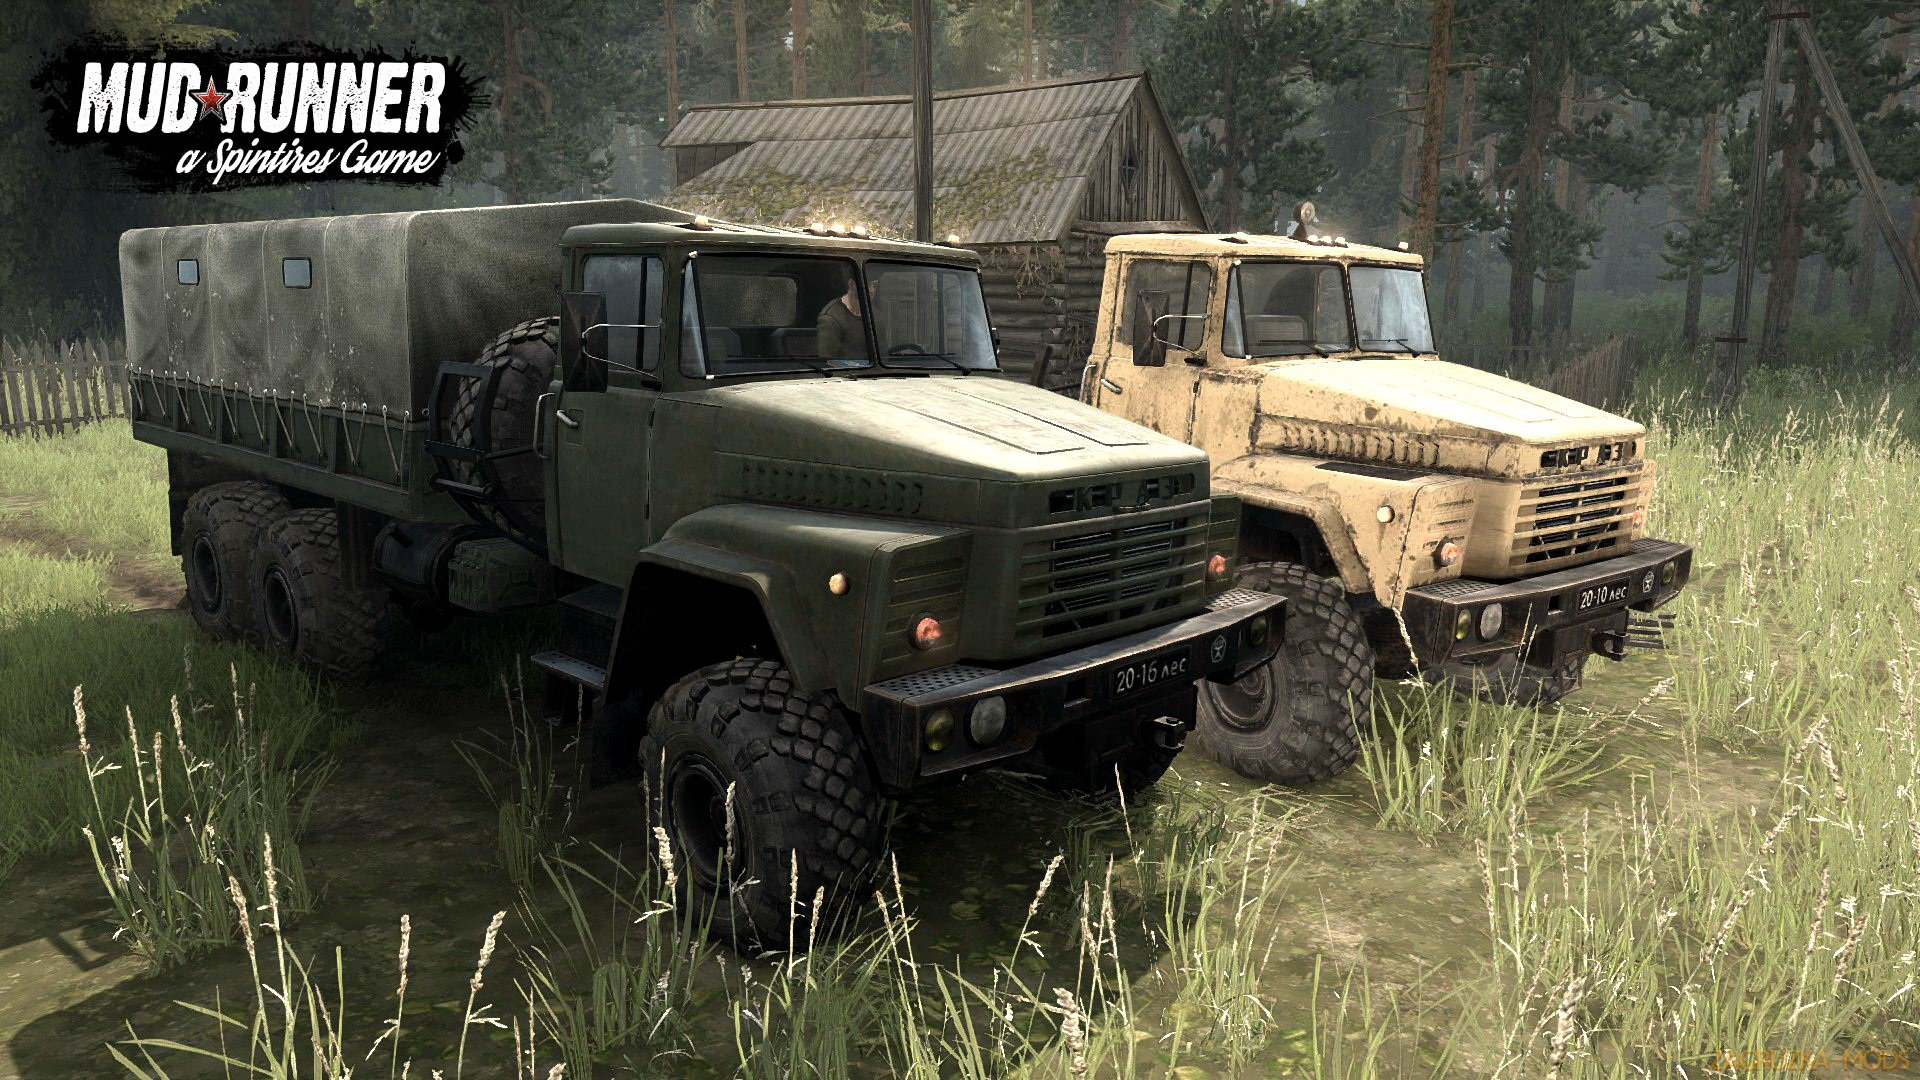 KrAZ-260 / 260B v1.0 (v07.11.17) for Spin Tires: MudRunner